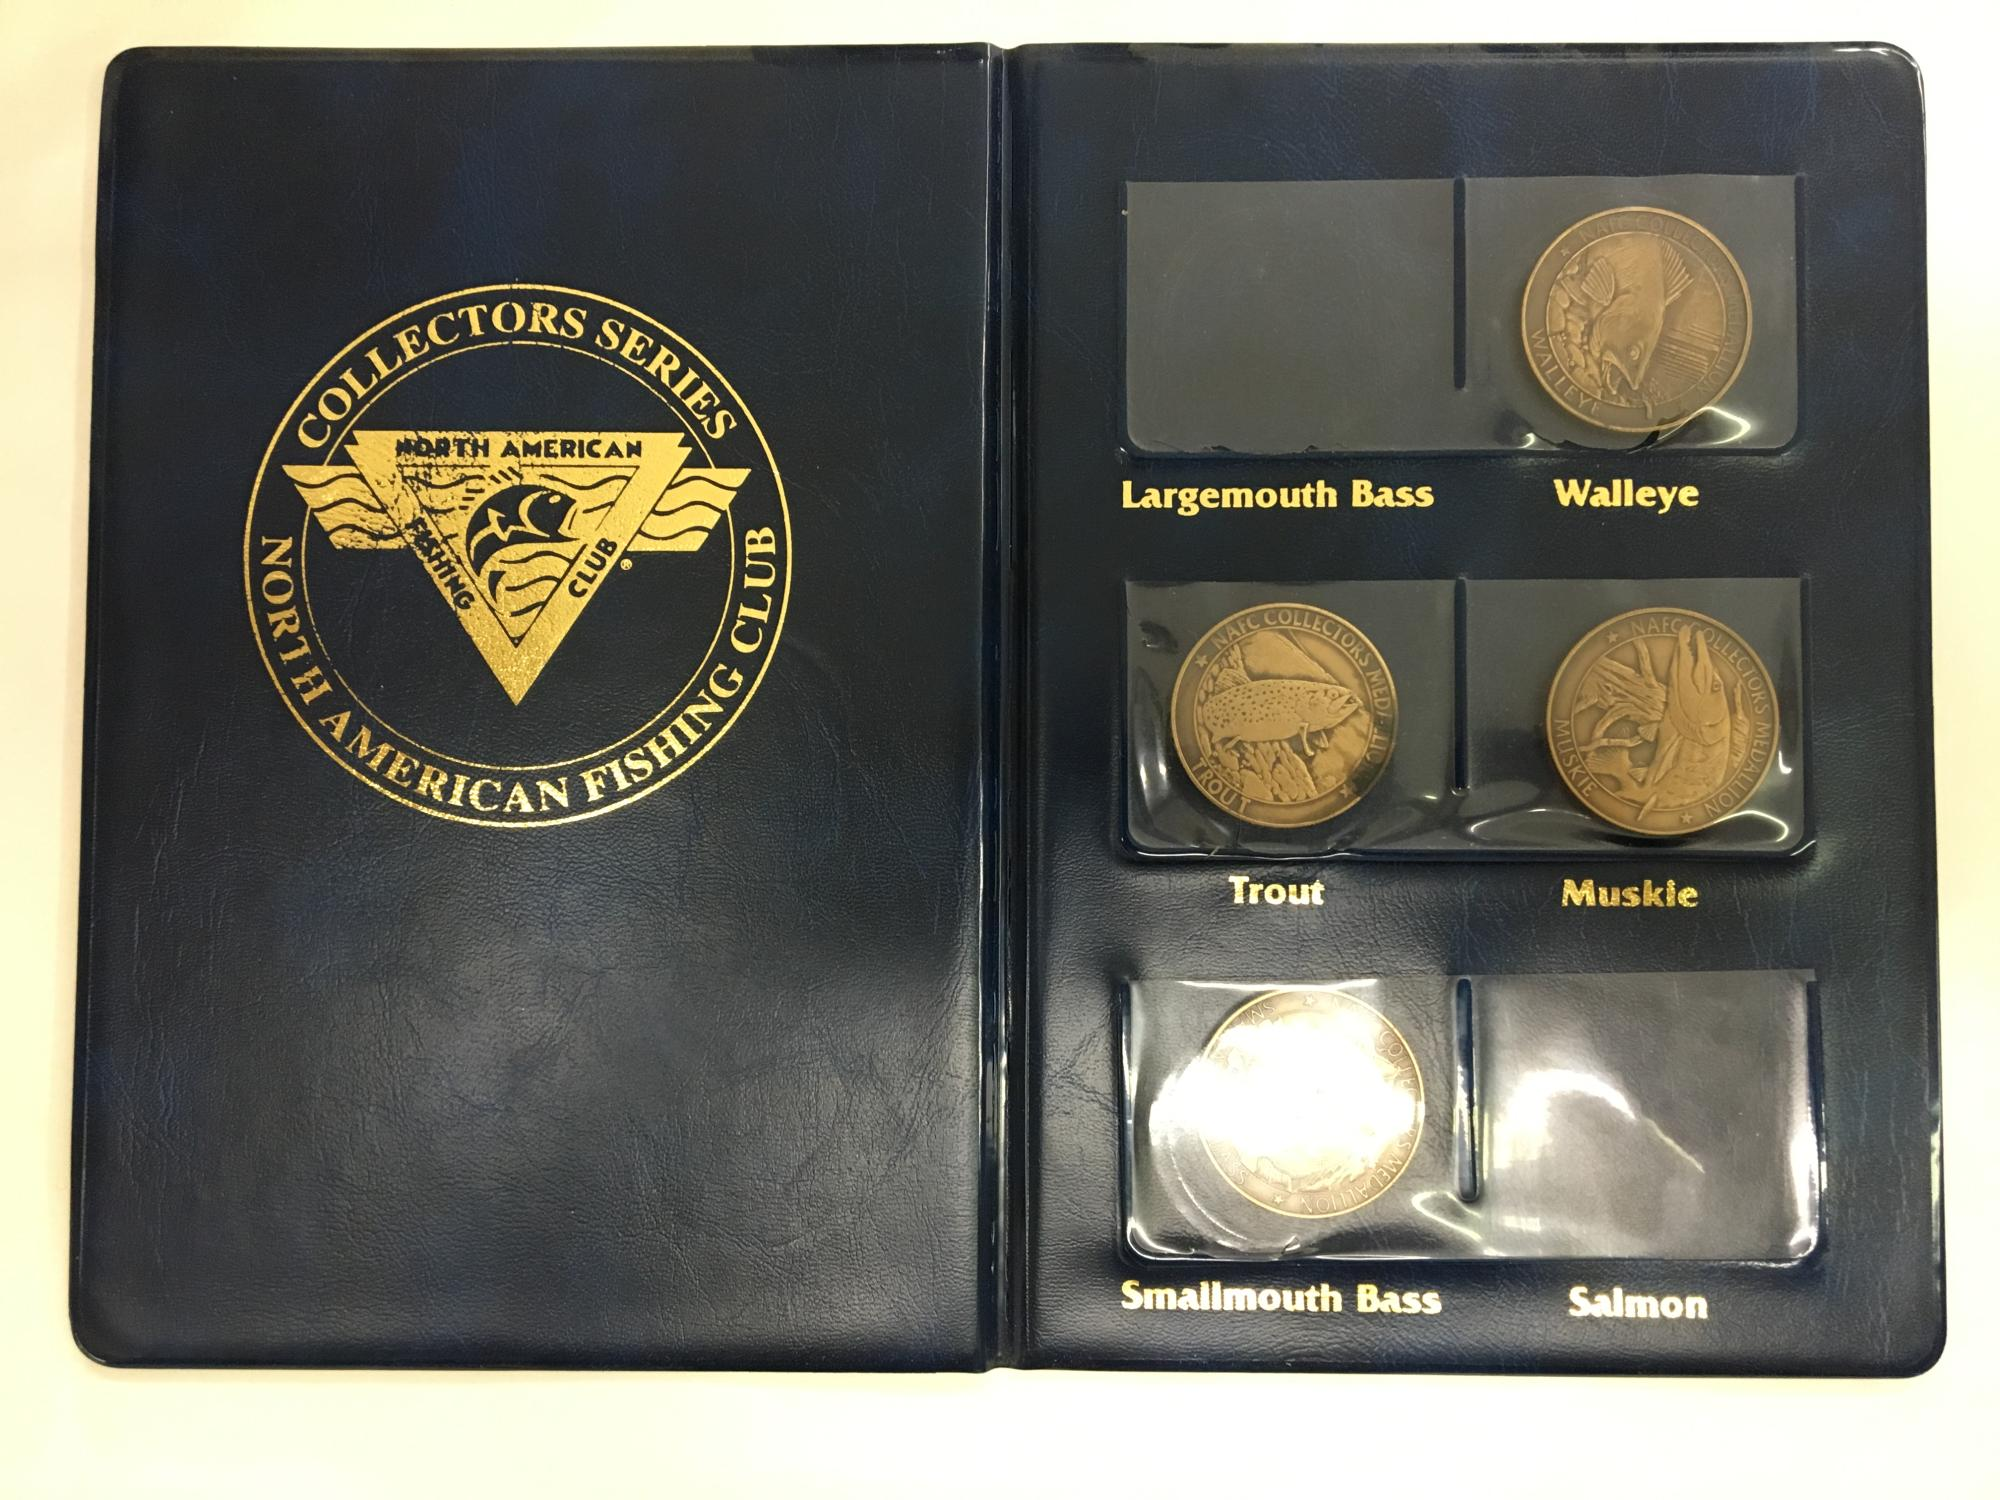 North American Fishing Club; NAFC - Collector's Medallions with Case